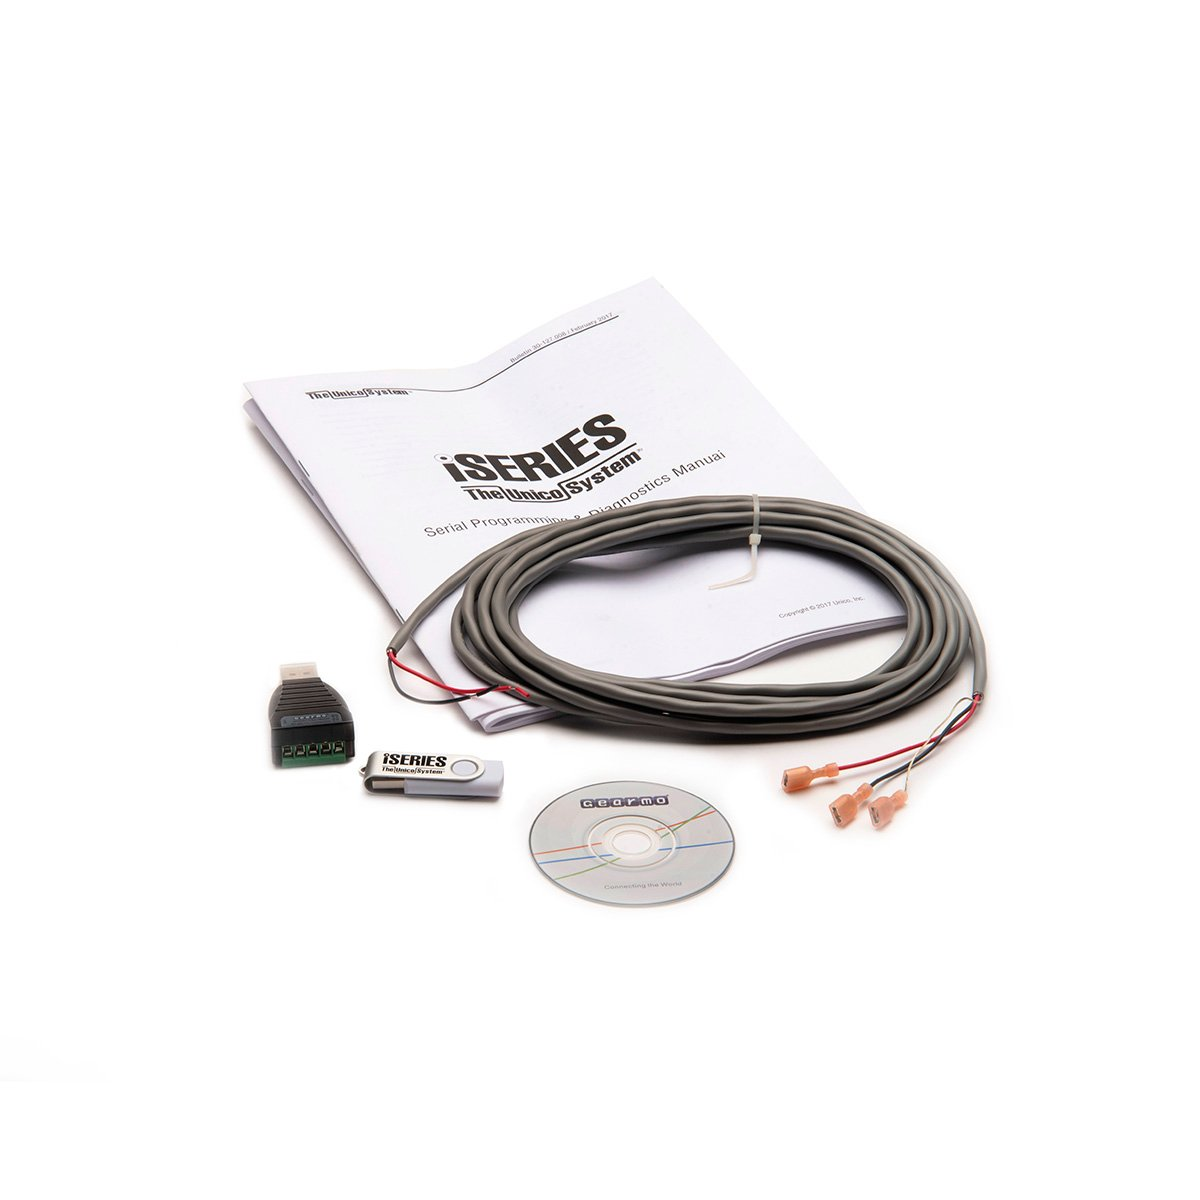 iSeries Serial Programming & Diagnostics Kit